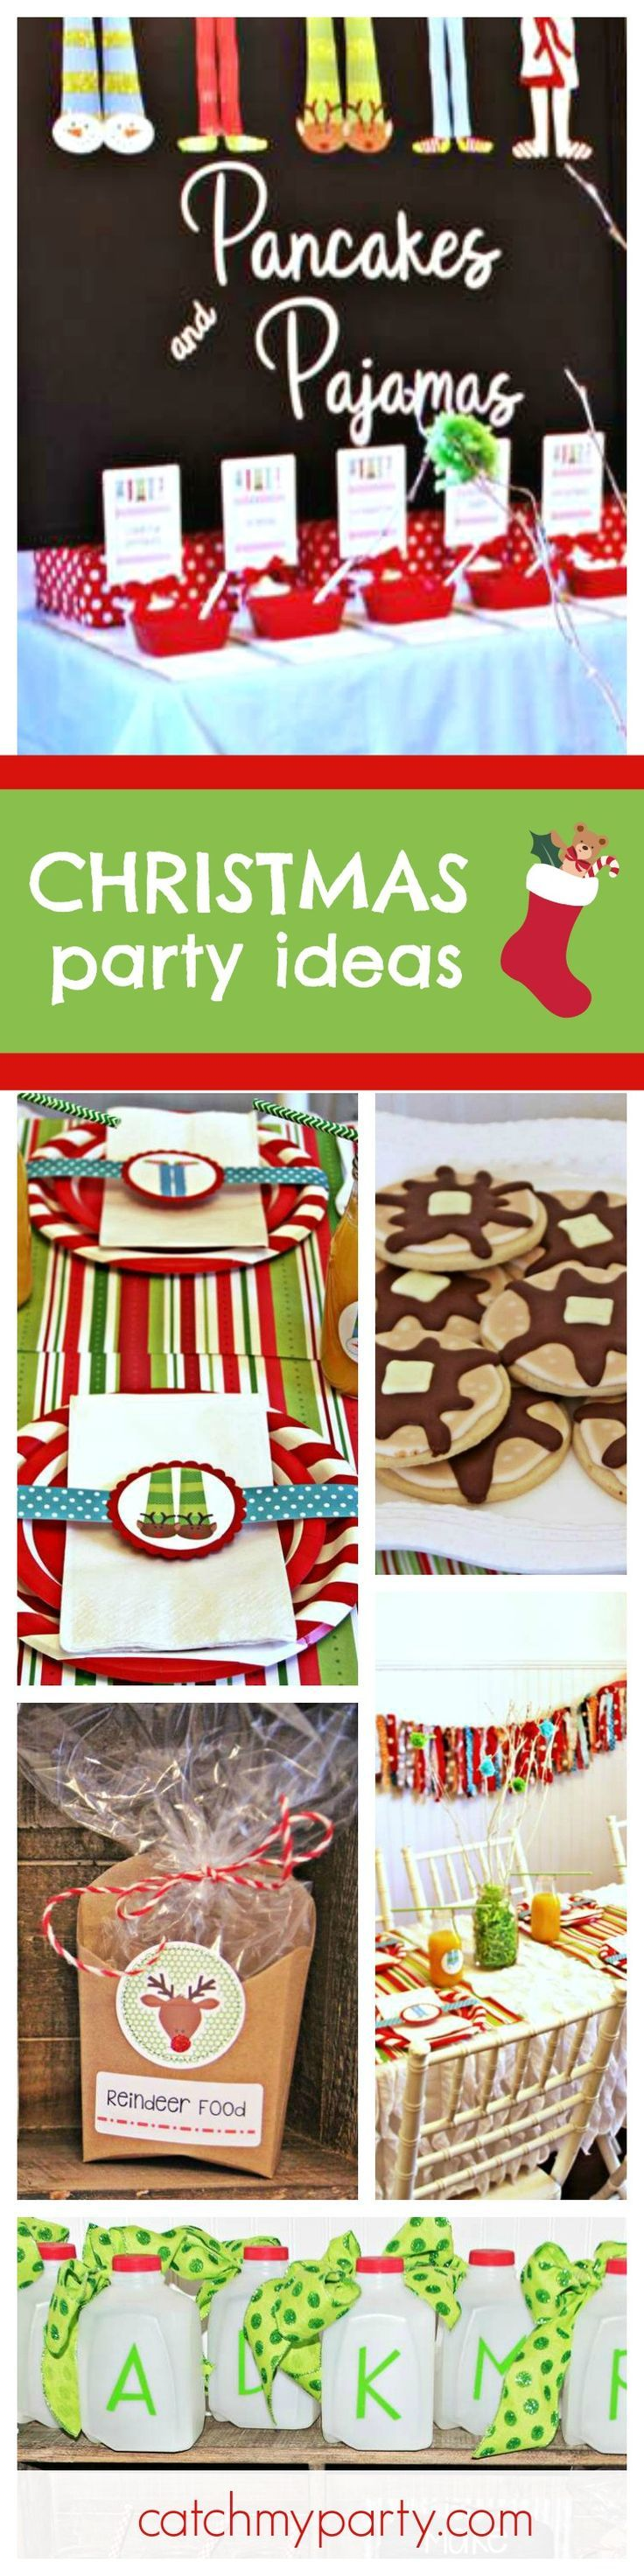 Pajama Christmas Party Ideas Part - 41: Check Out This Fantastic Pancakes U0026 Pajamas Christmas Party. The Holiday  Table Settings Are So